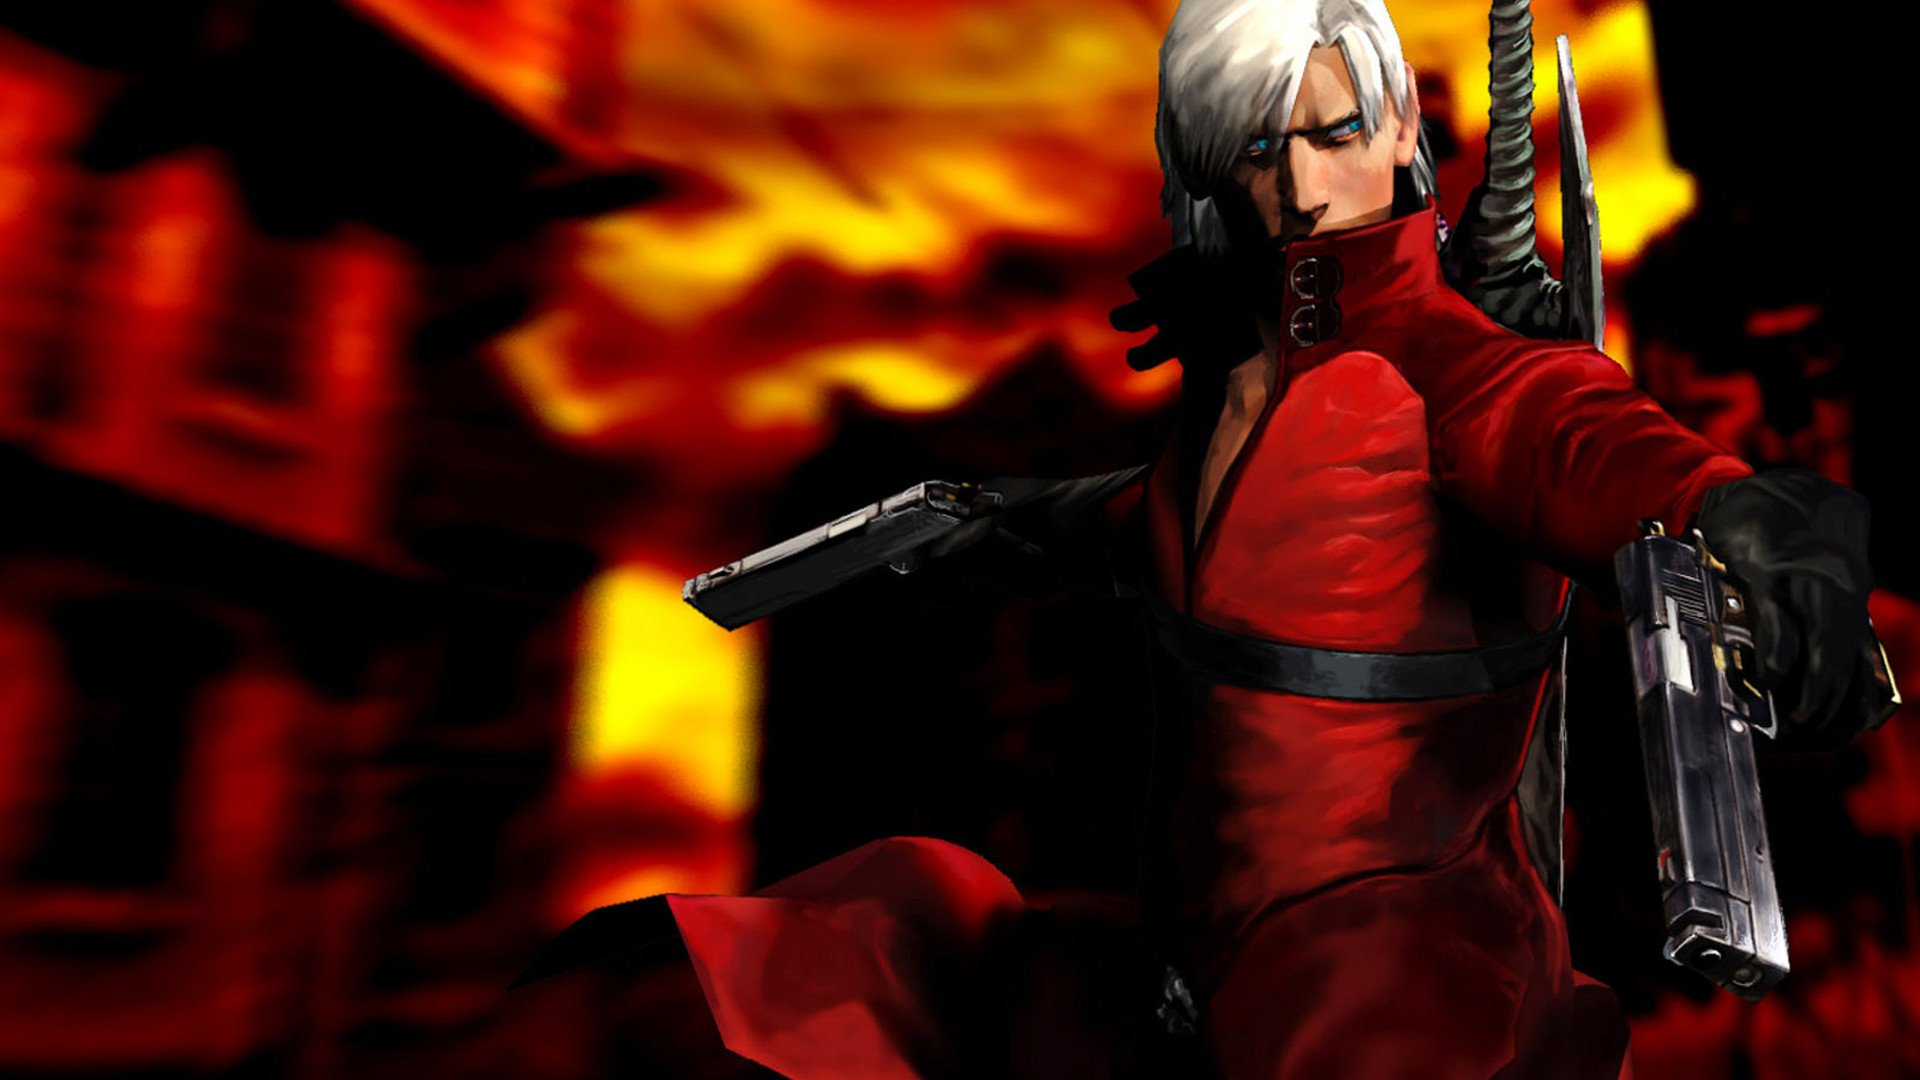 Devil May Cry 2 Hd Wallpaper Background Image 1920x1080 Id